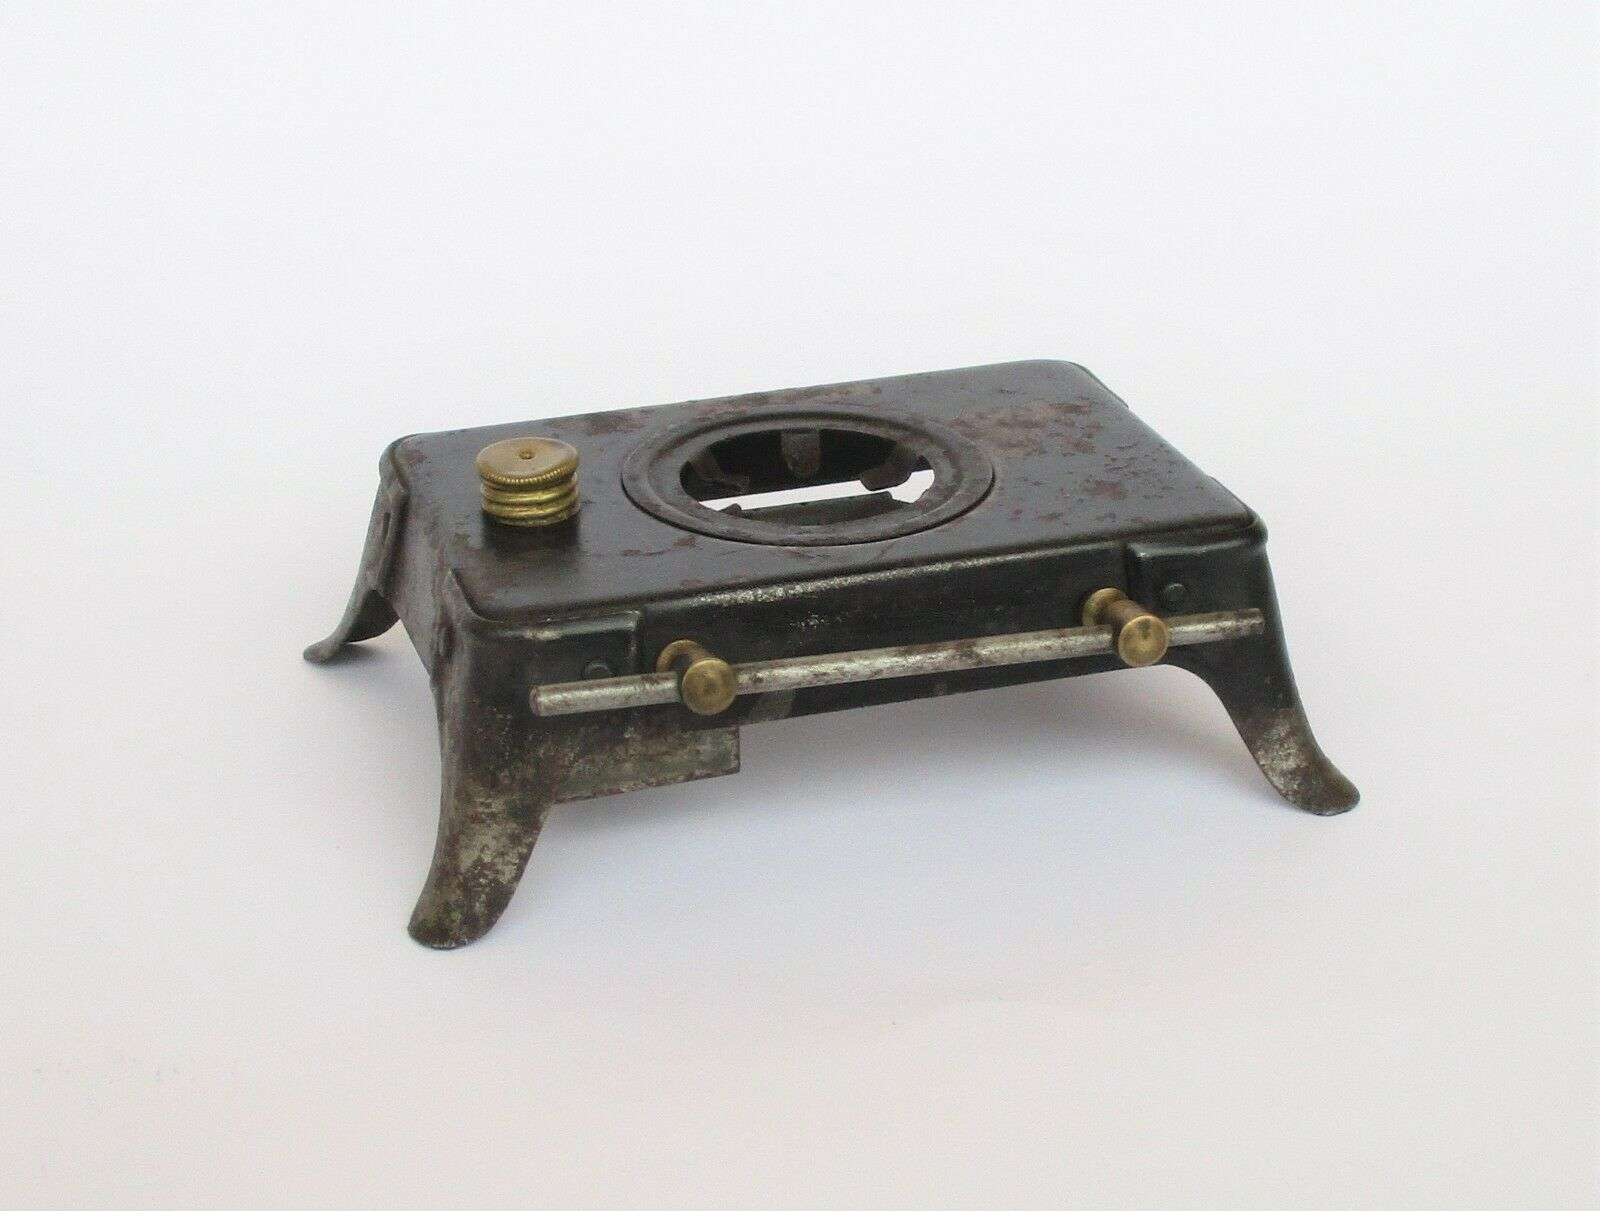 ANTIQUE MINIATURE KITCHEN COOK STOVE WITH ONE BURNER TIN TOY